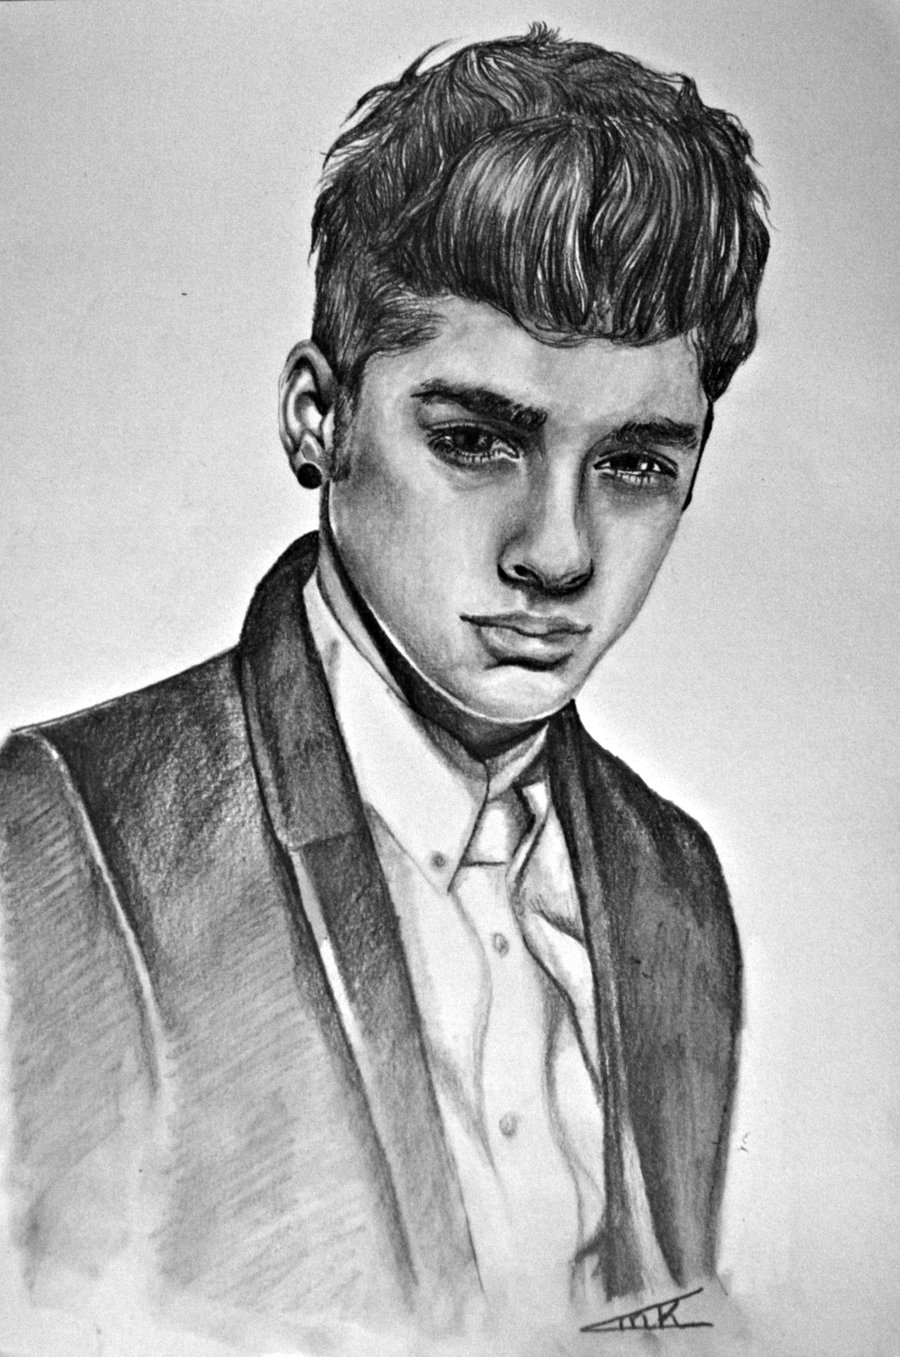 235 images about 1d on we heart it see more about one direction zayn malik and 1d